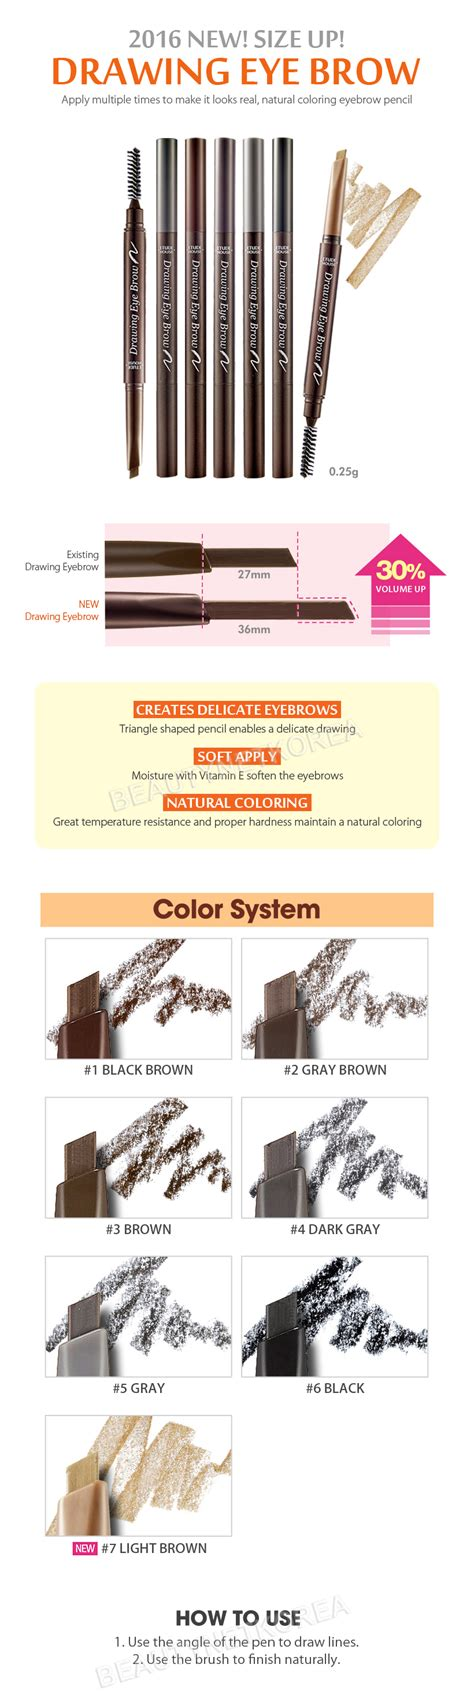 Etude House Drawing Eyebrow New etude house drawing eye brow 0 25g 7 color new best